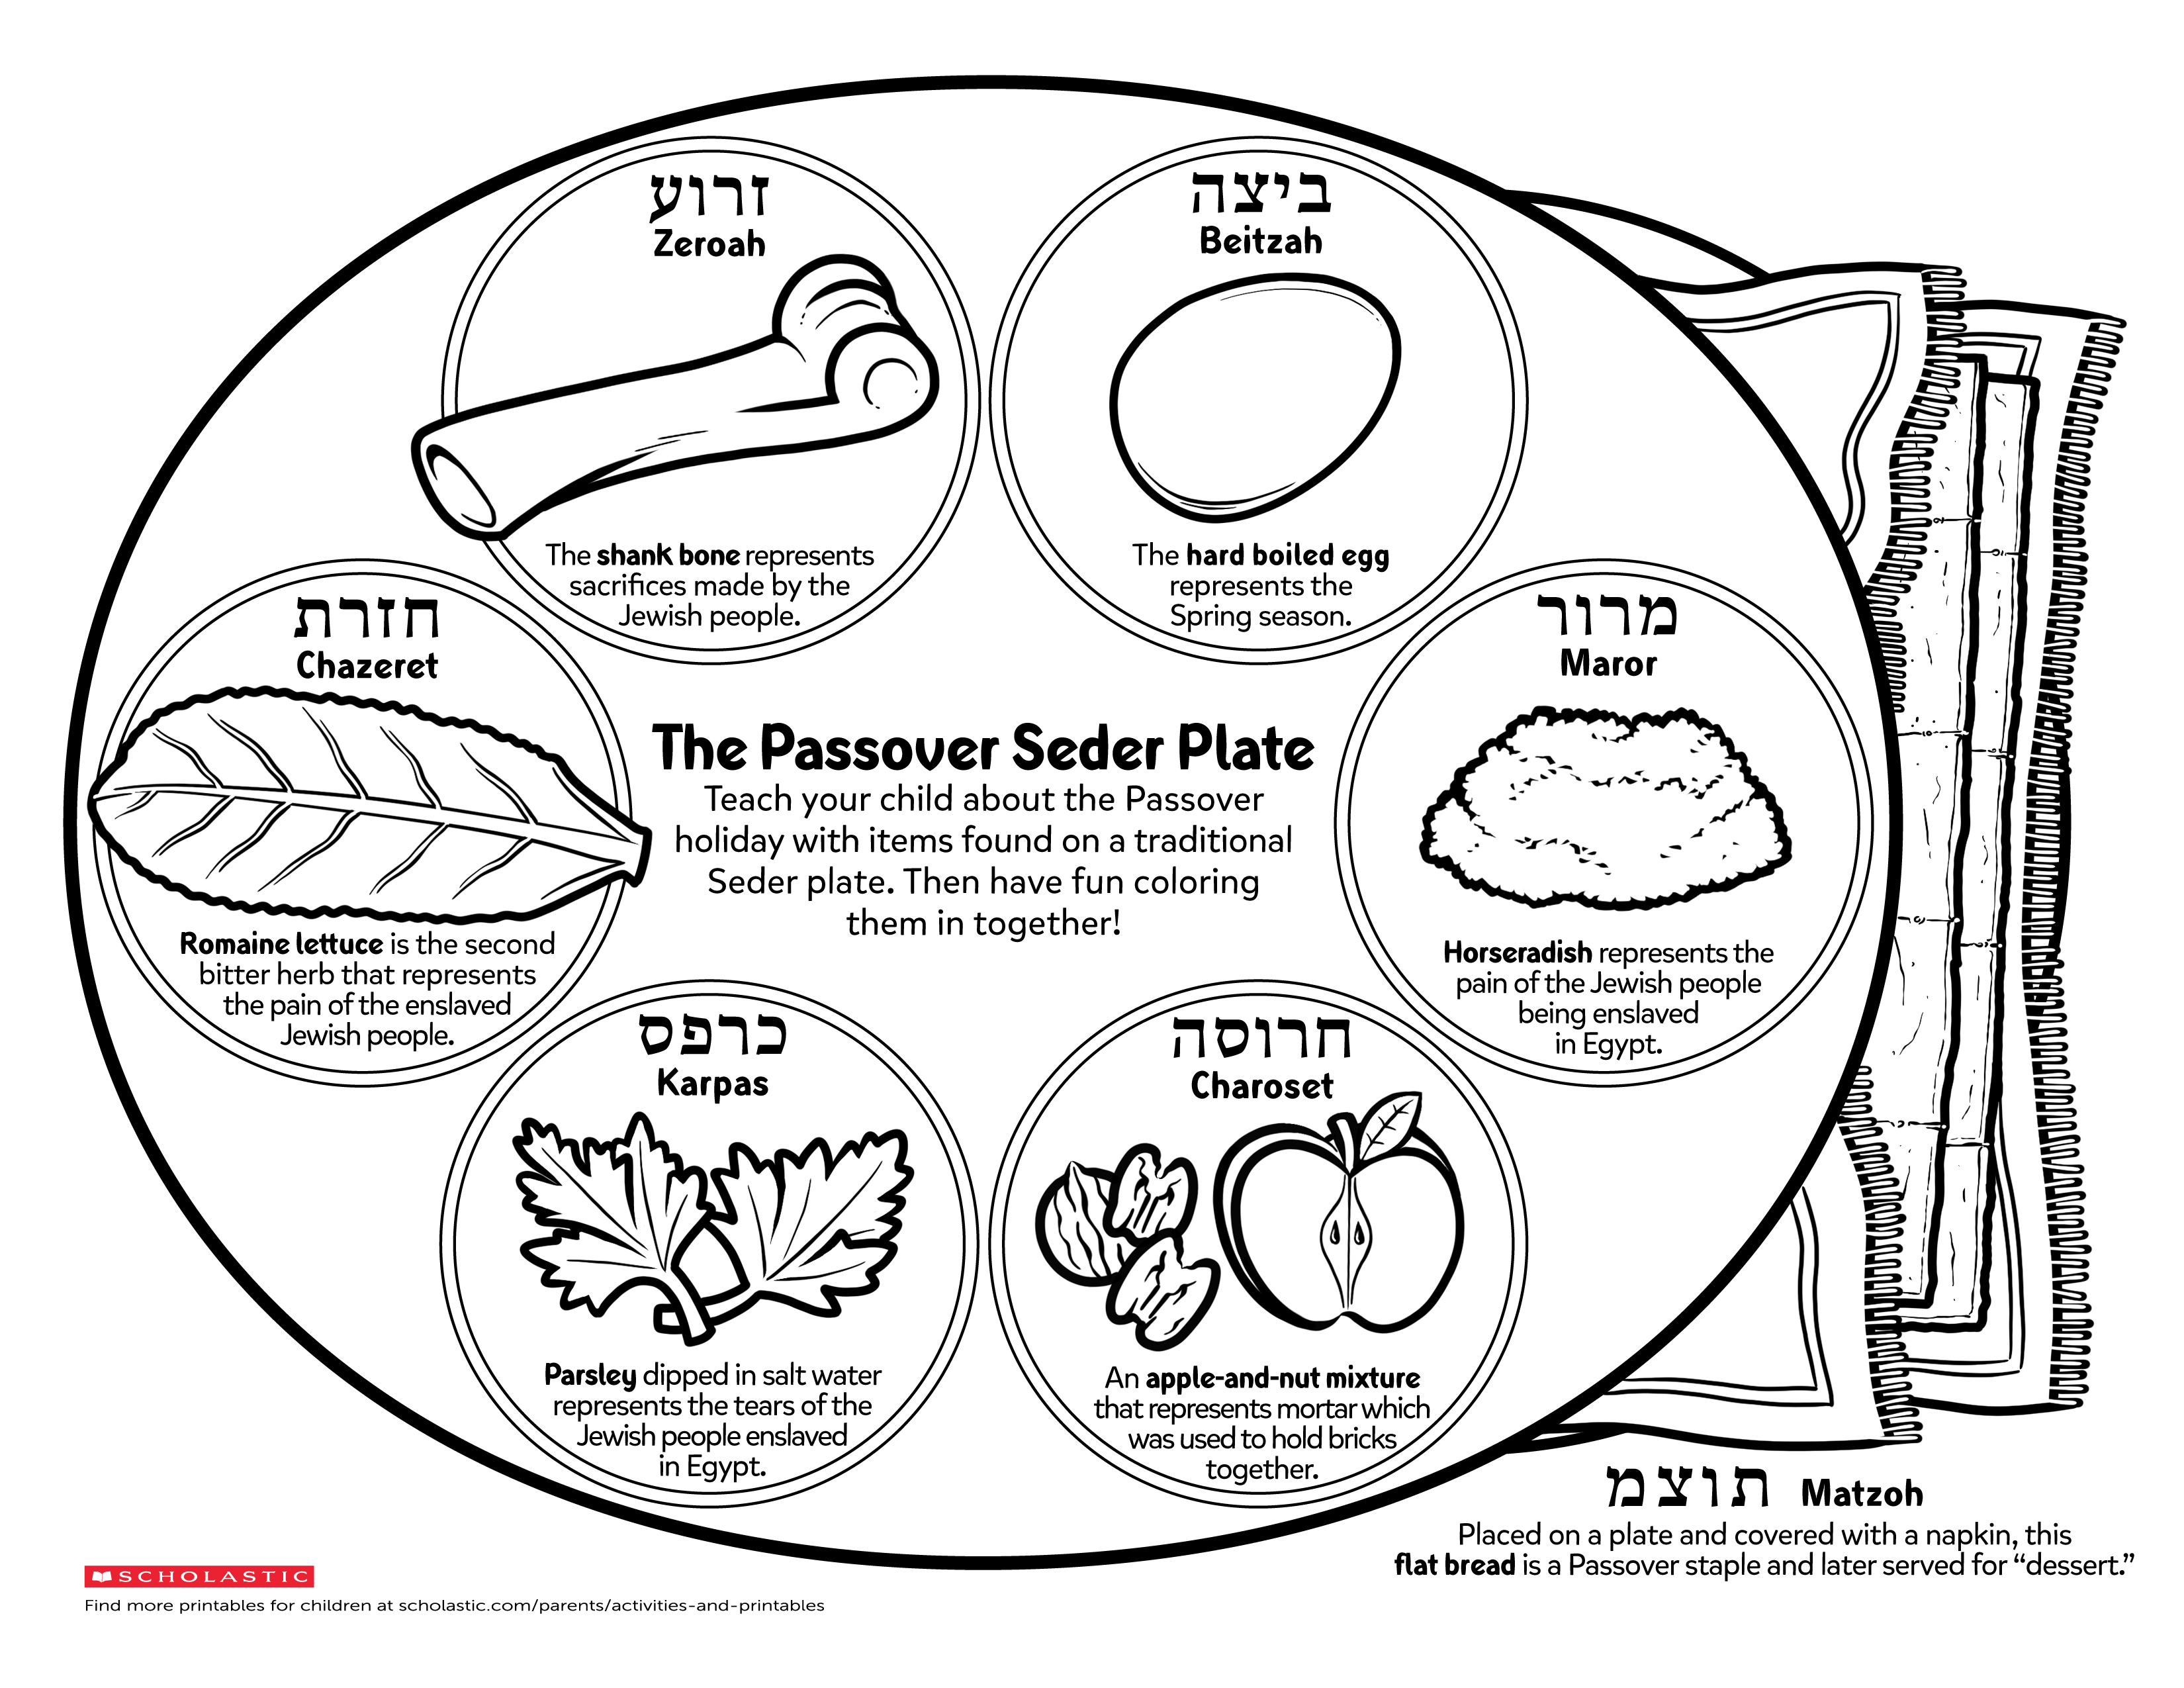 Celebrate Passover With a Seder Plate Printable | Scholastic | Parents